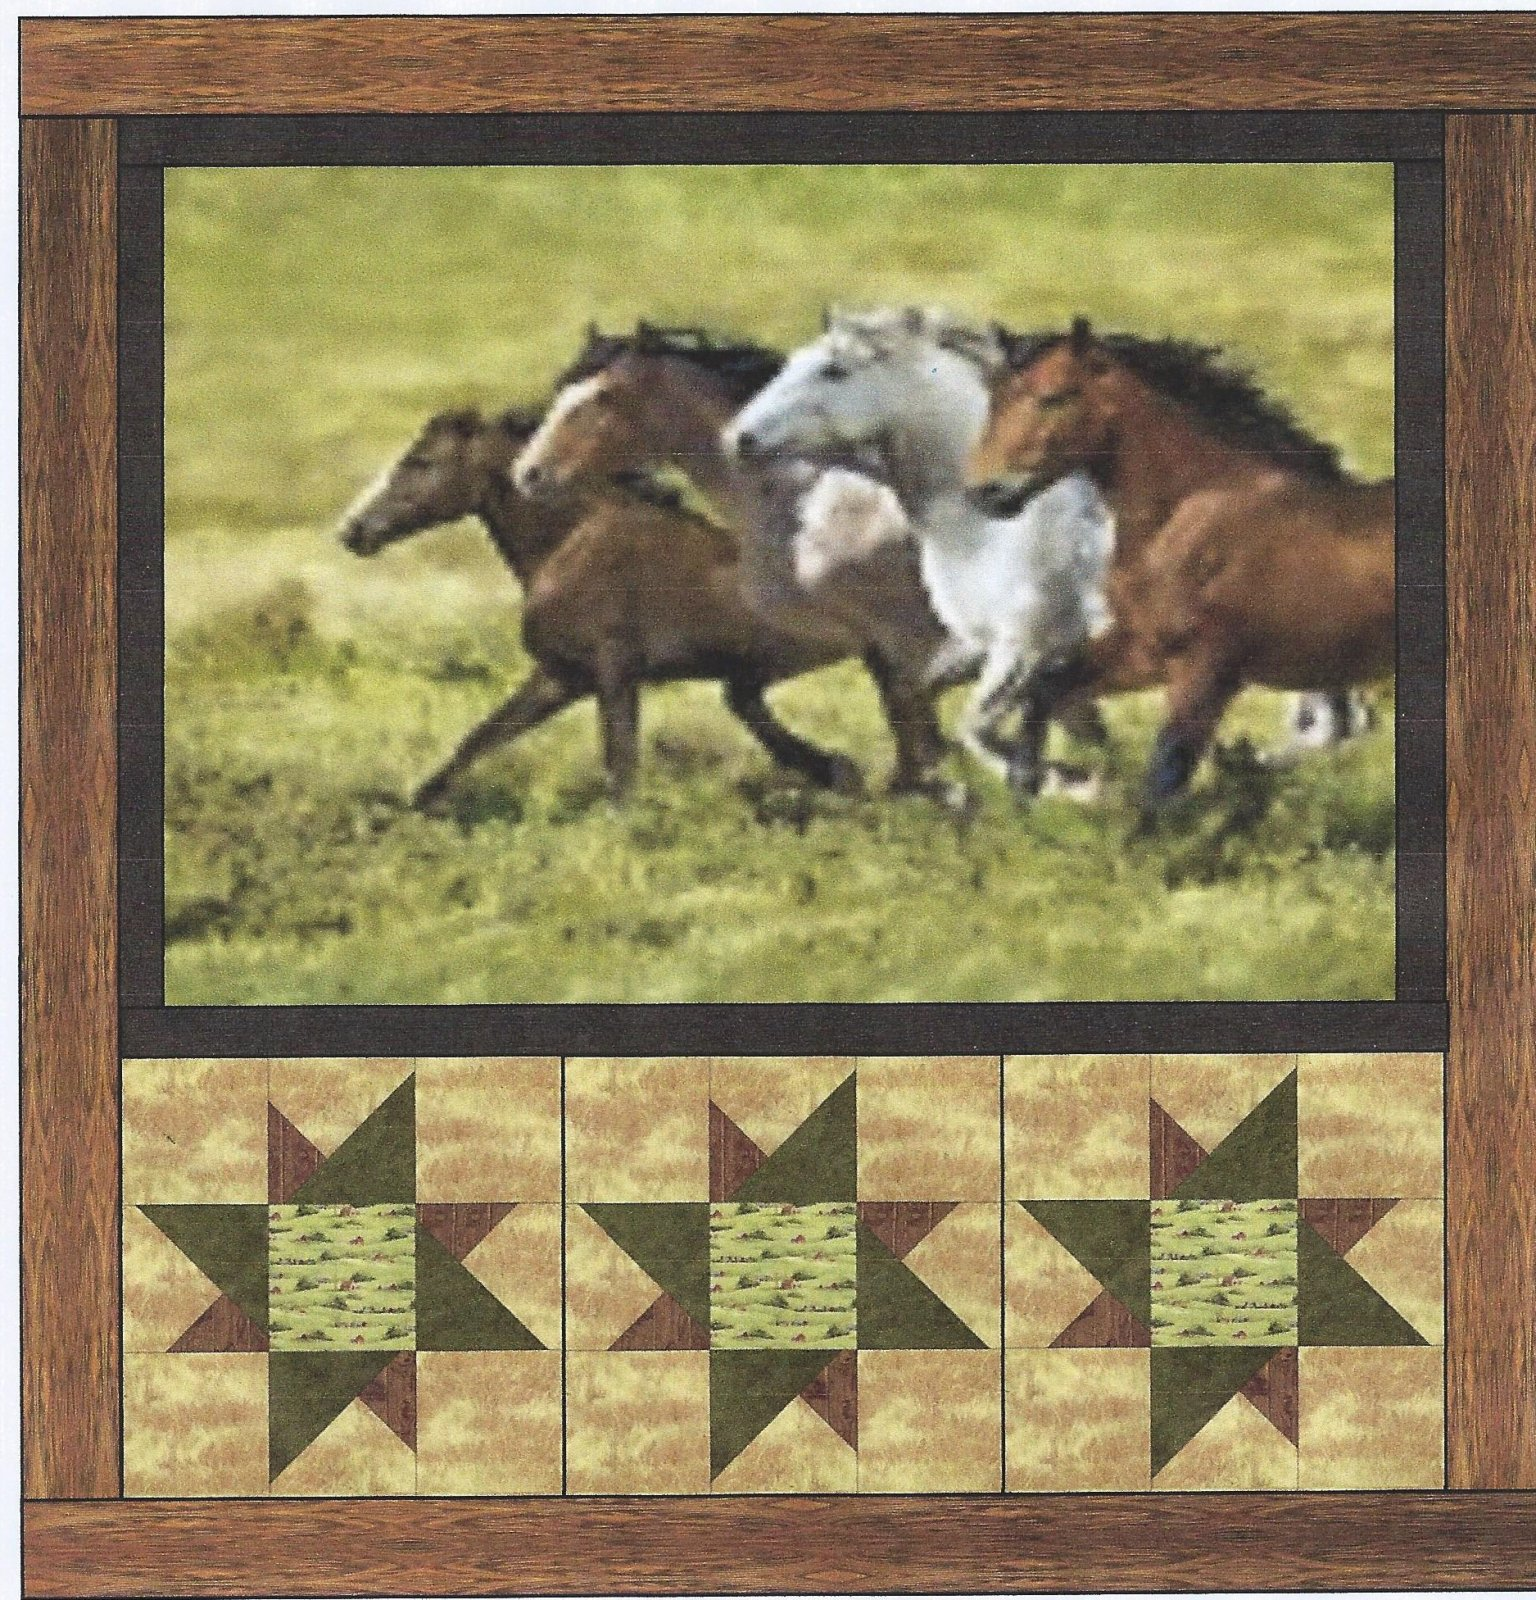 WORFQK1 Wide Open Spaces Quilt Kit 53 x 62